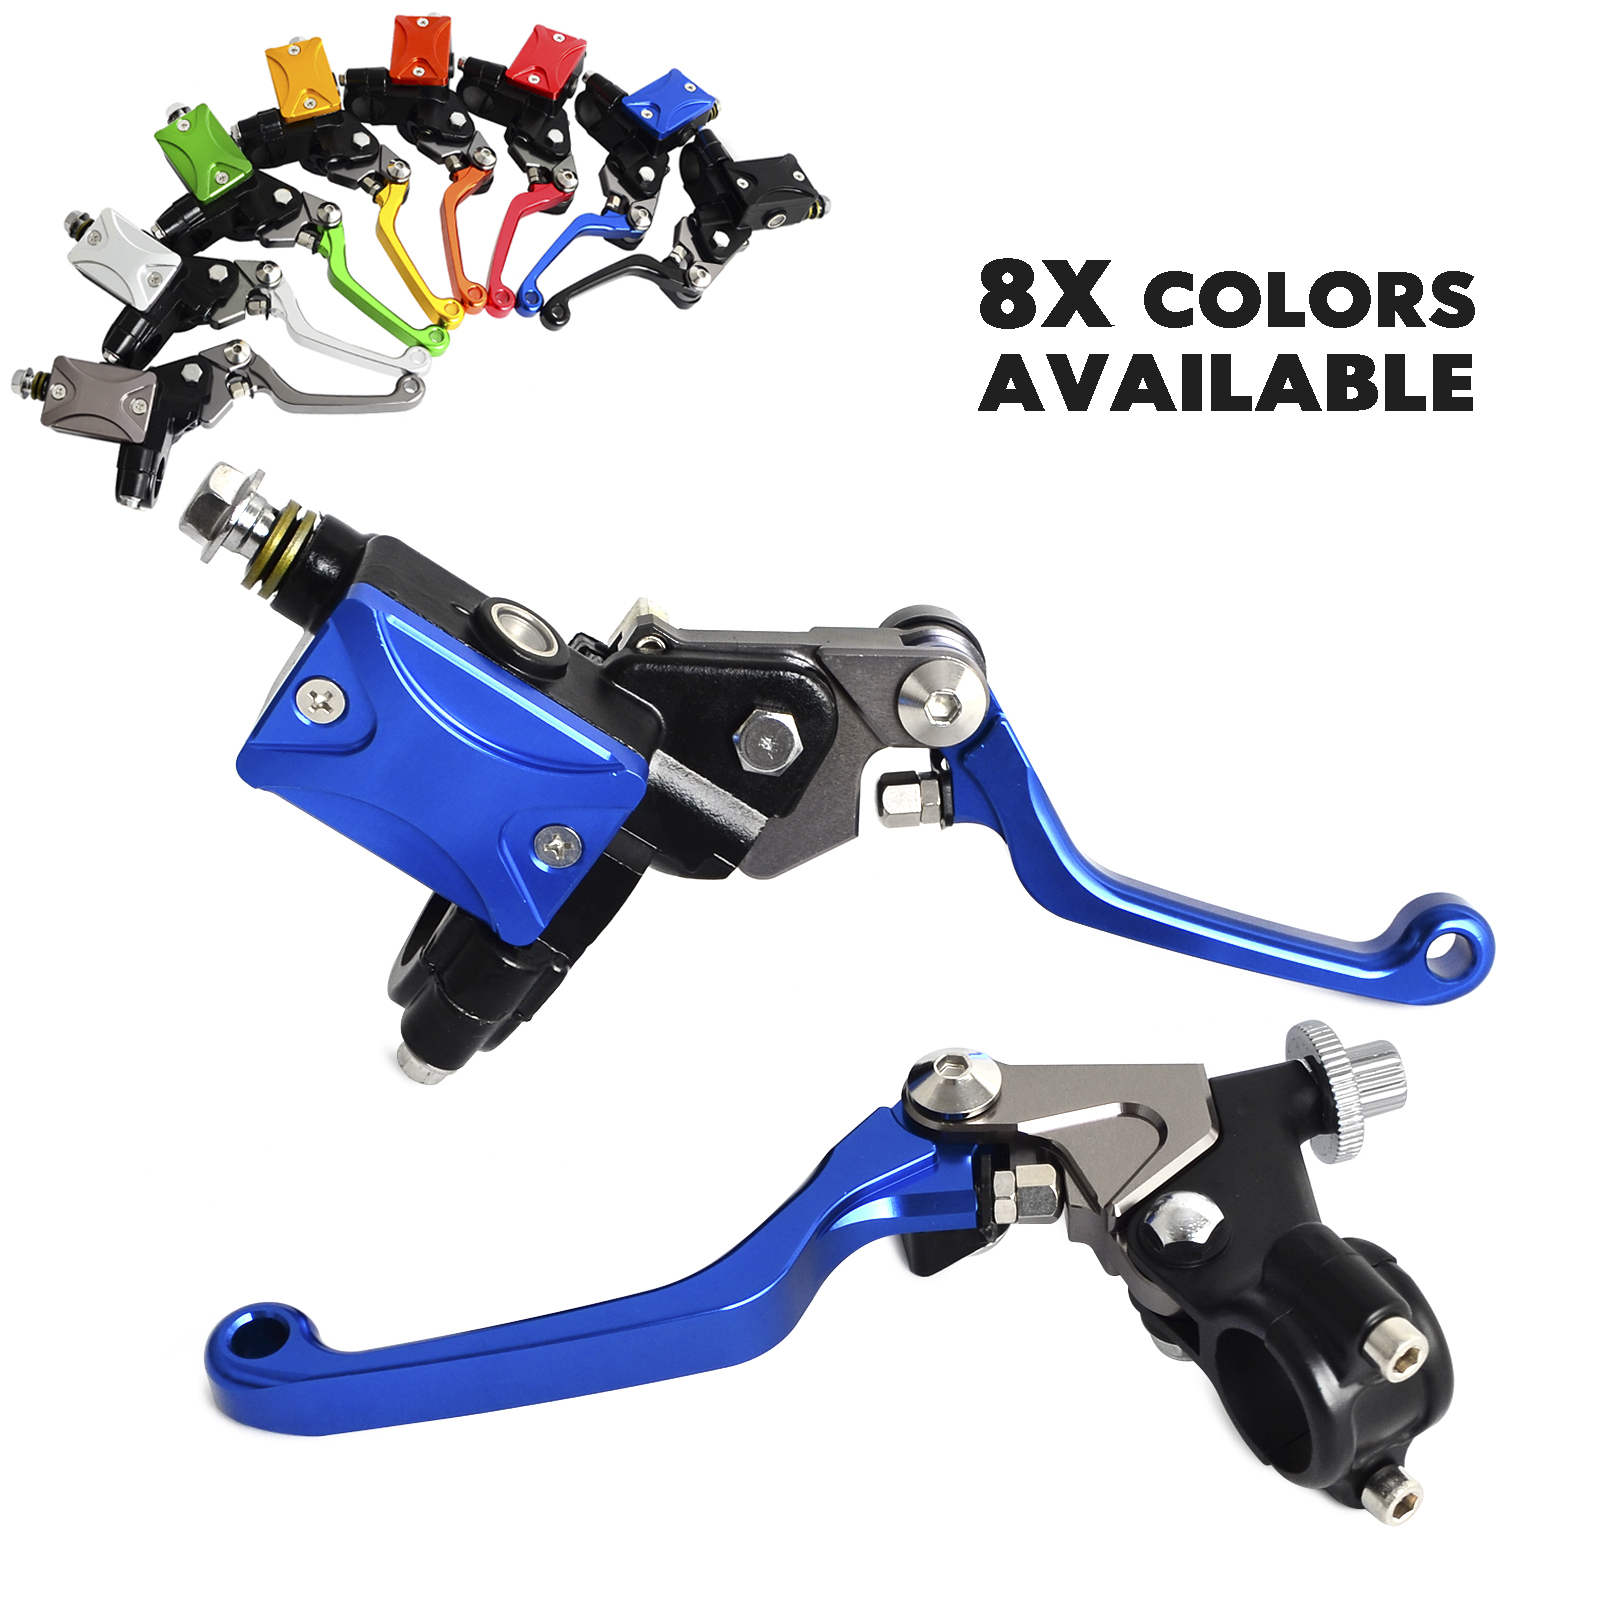 NICECNC Motorcycle Brake Clutch levers for Yamaha WR250R WR250X WR250F TTR250 600 XT250X YZ125 250 YZ426F